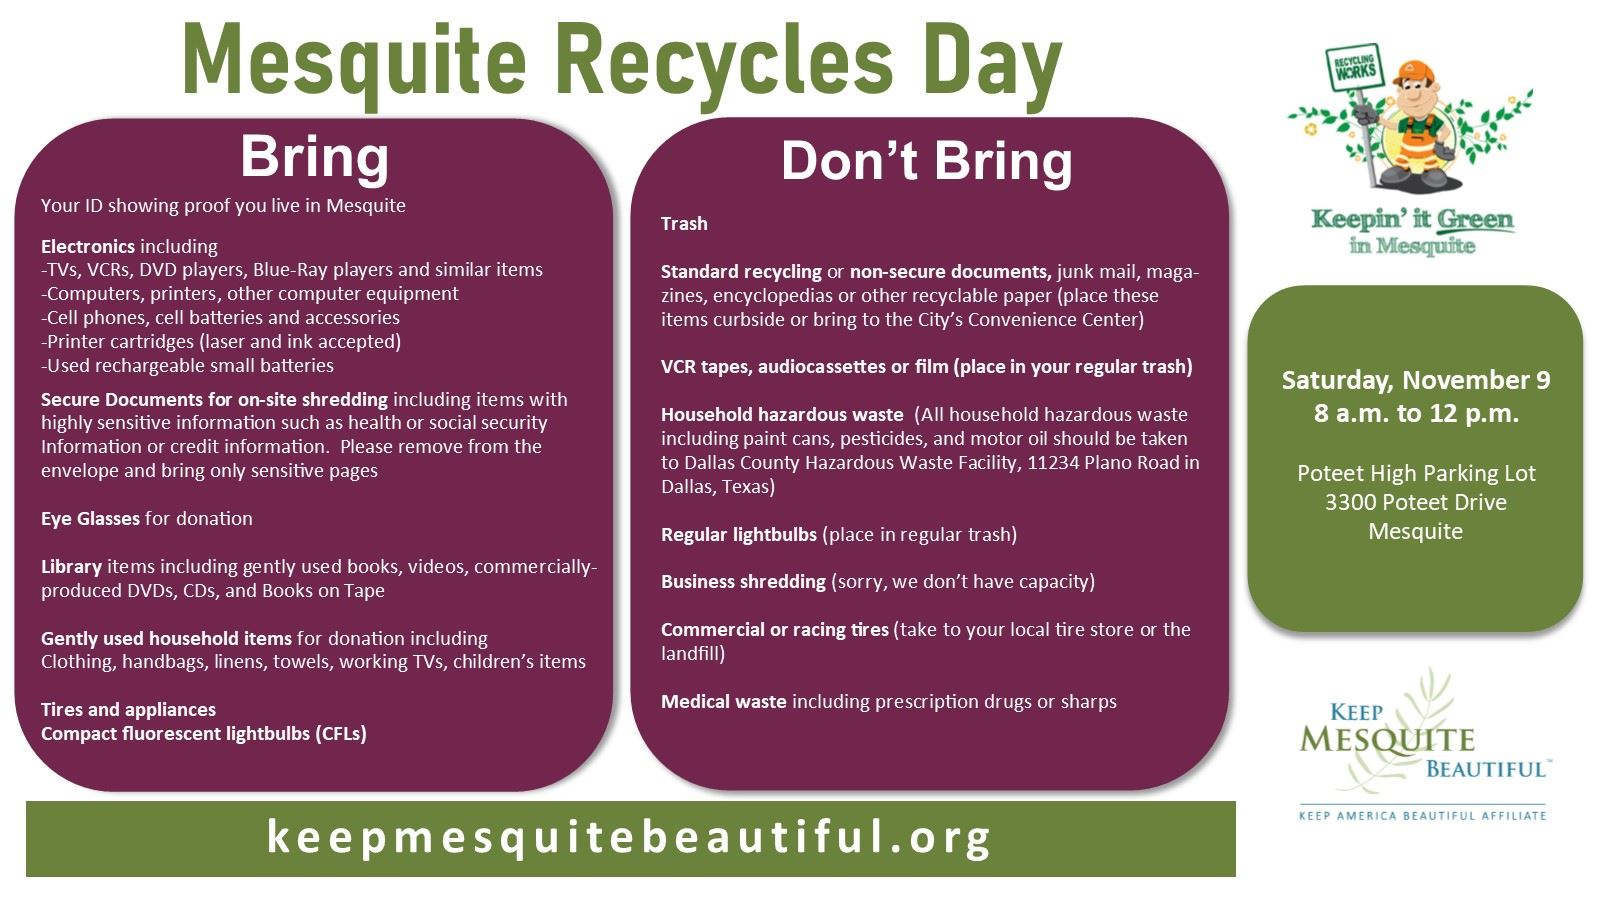 recycles day 2019